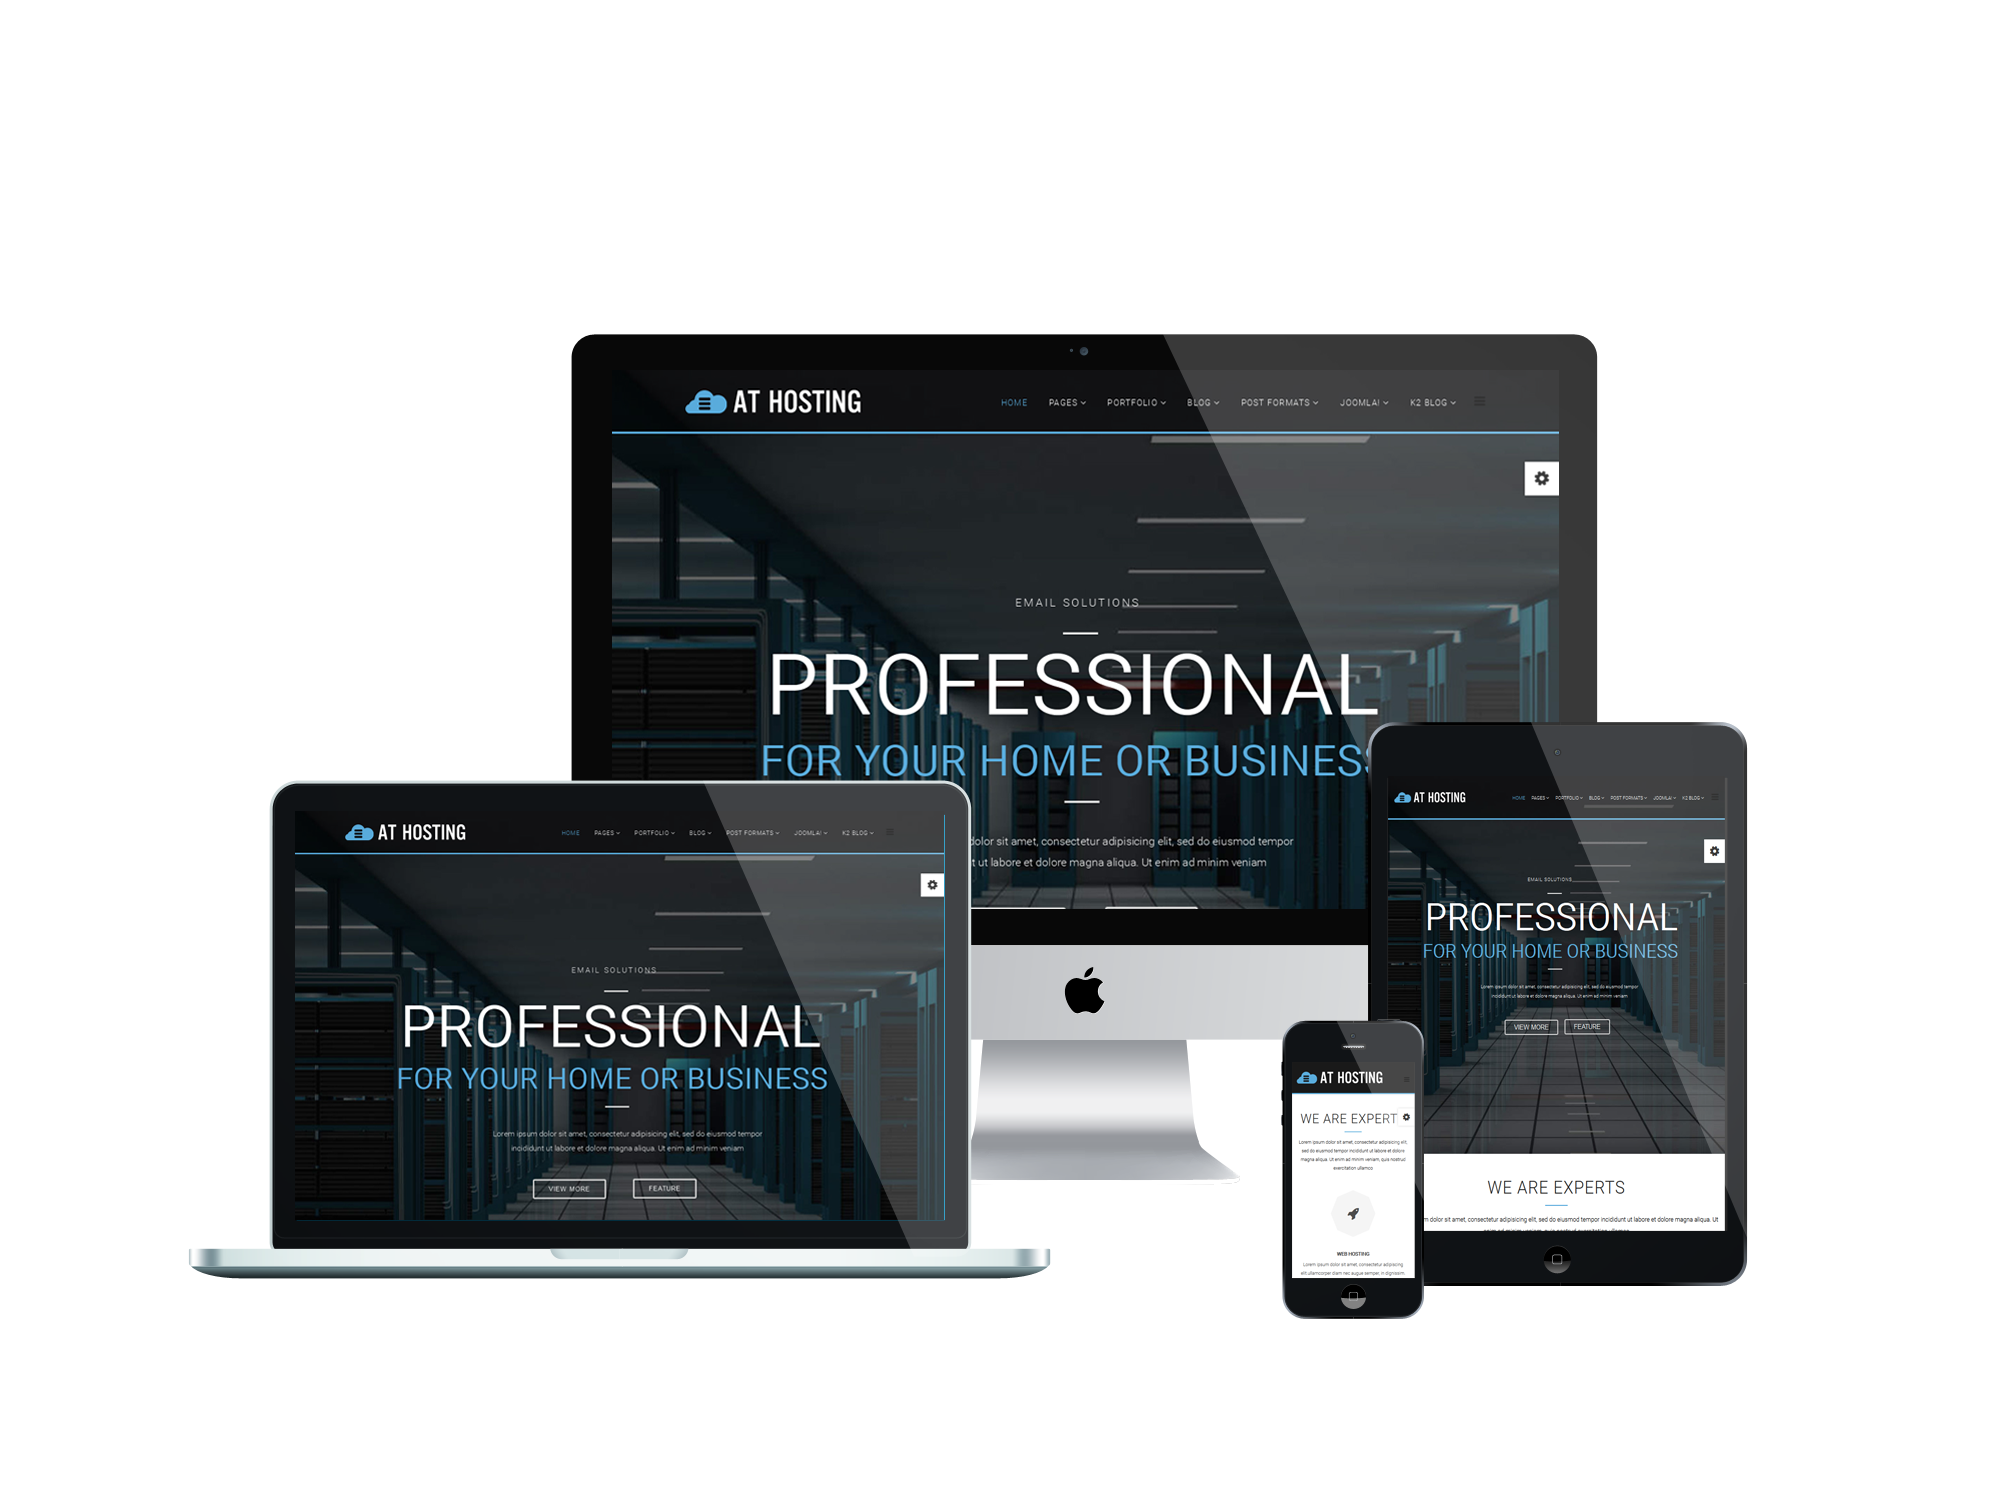 FREE Server Hosting Joomla Template – AT Hosting is an excellent